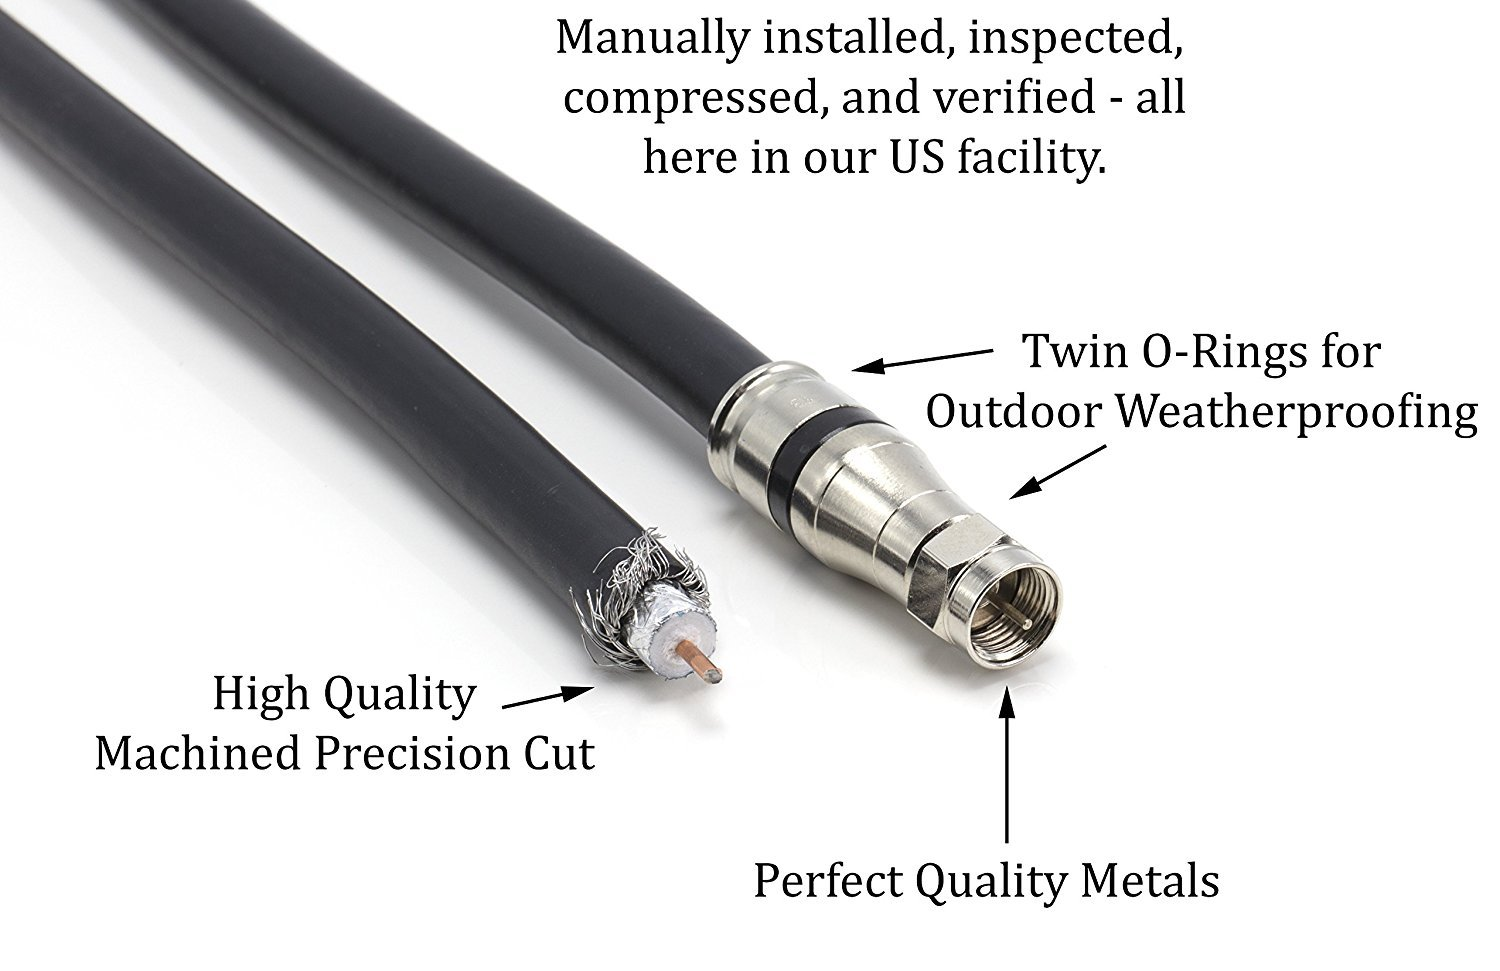 Amazon.com: THE CIMPLE CO - 10 Foot RG-11 Coaxial Cable, Made in The USA | F Type Cable High Definition with RG11 Coax Compression Connectors – (Black): ...